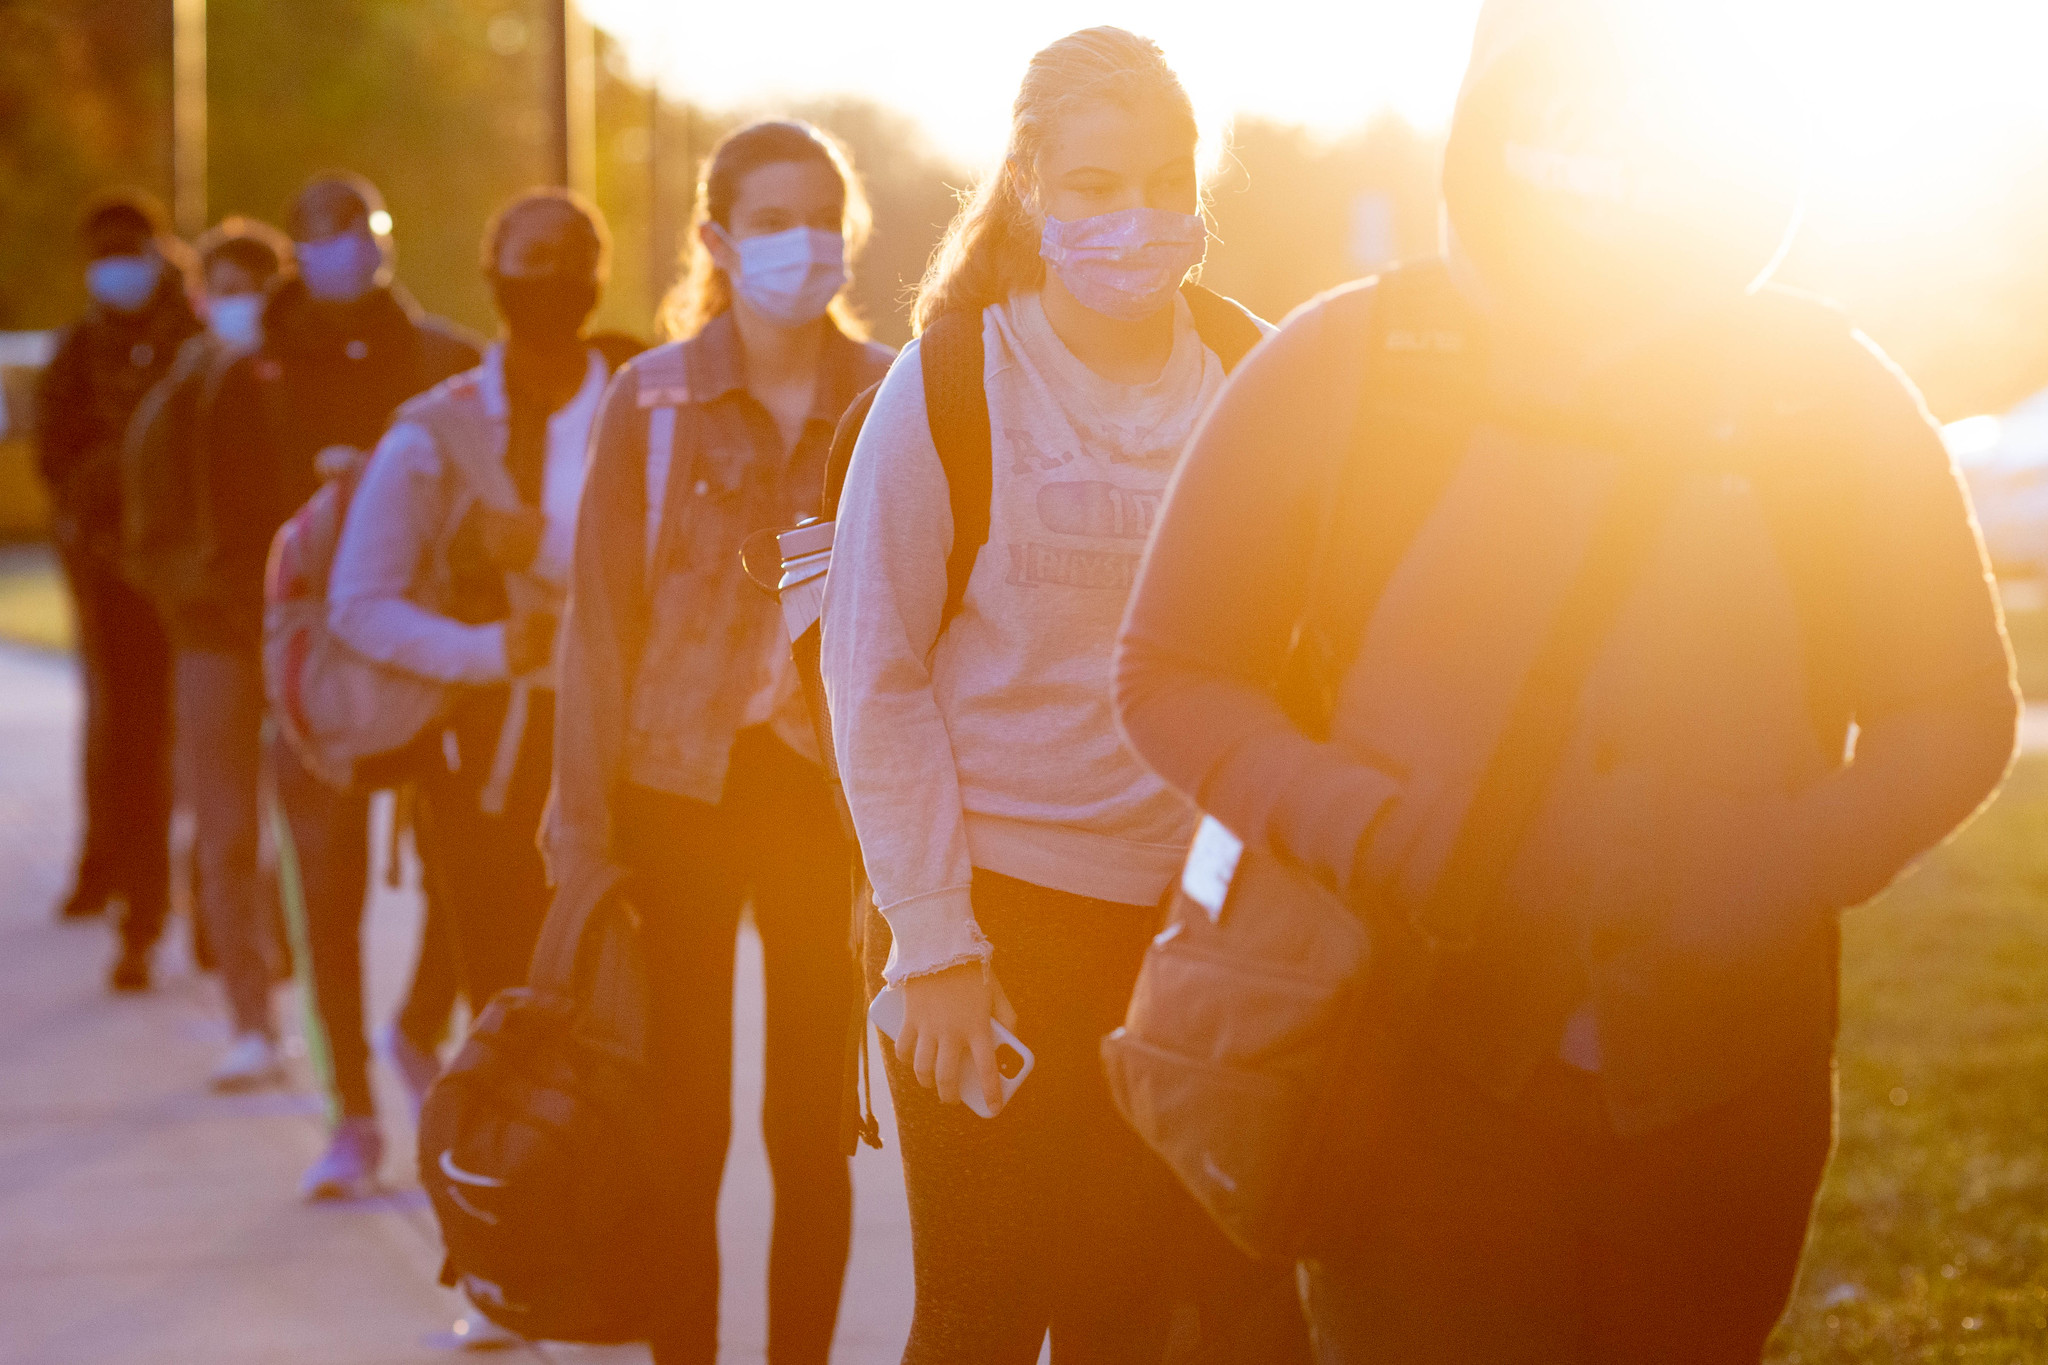 Students in a line with masks on